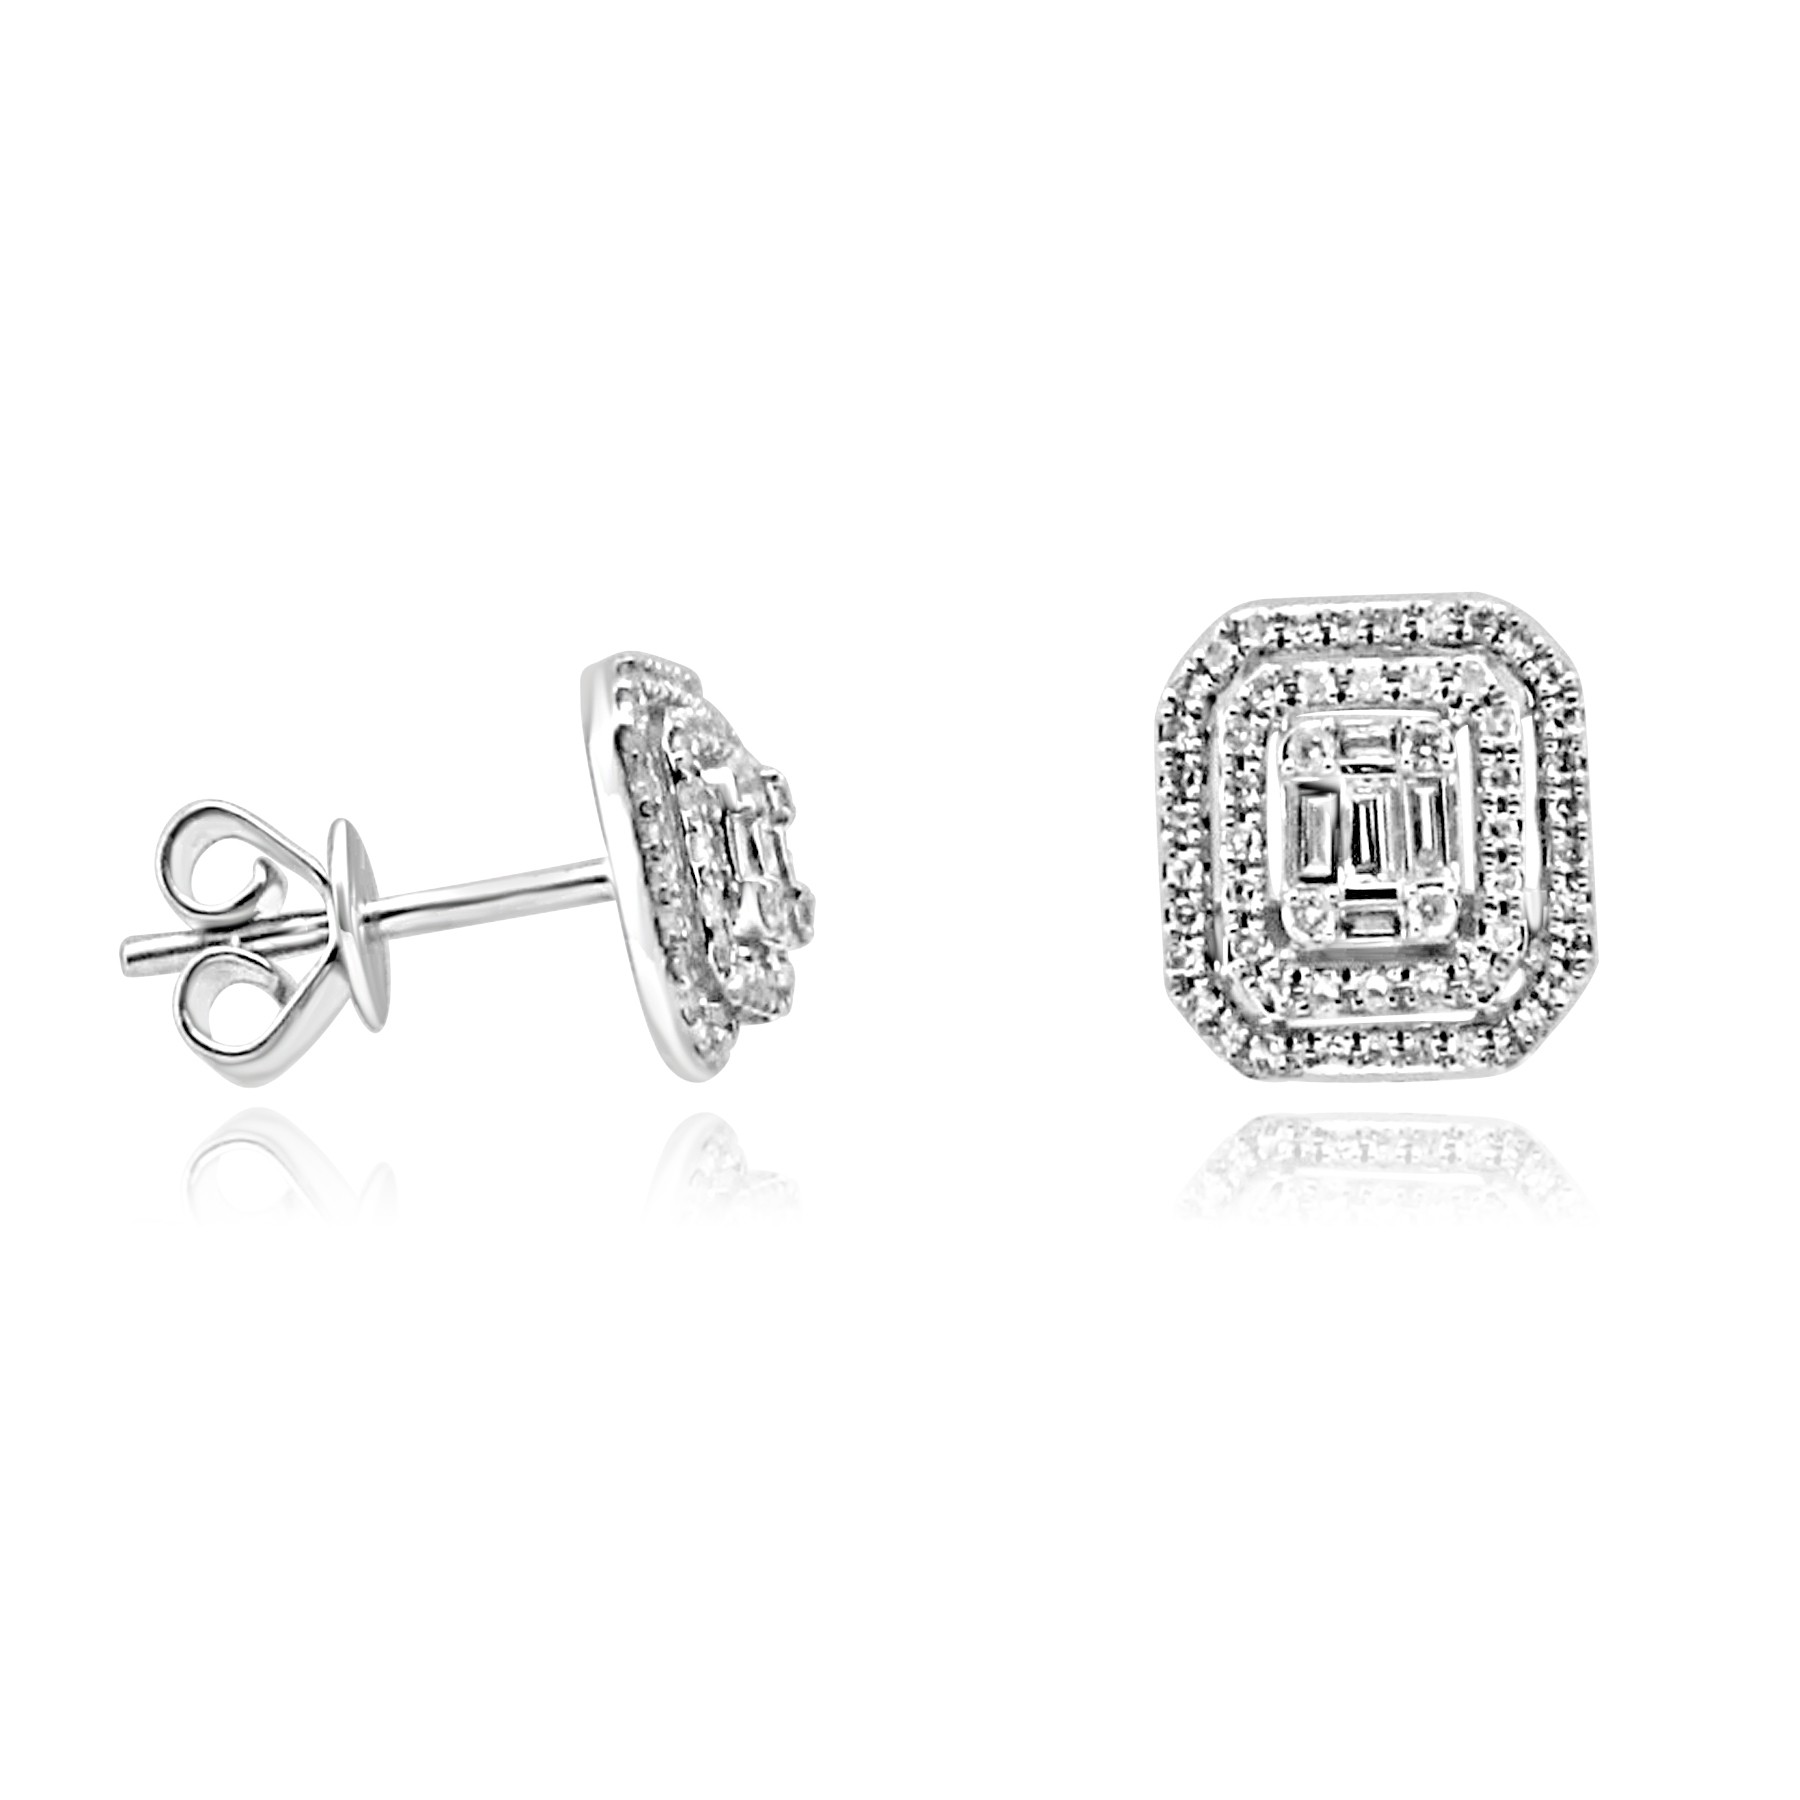 wg products earrings chevron diamond ef diamondbaguette baguette stud earring chevronstud